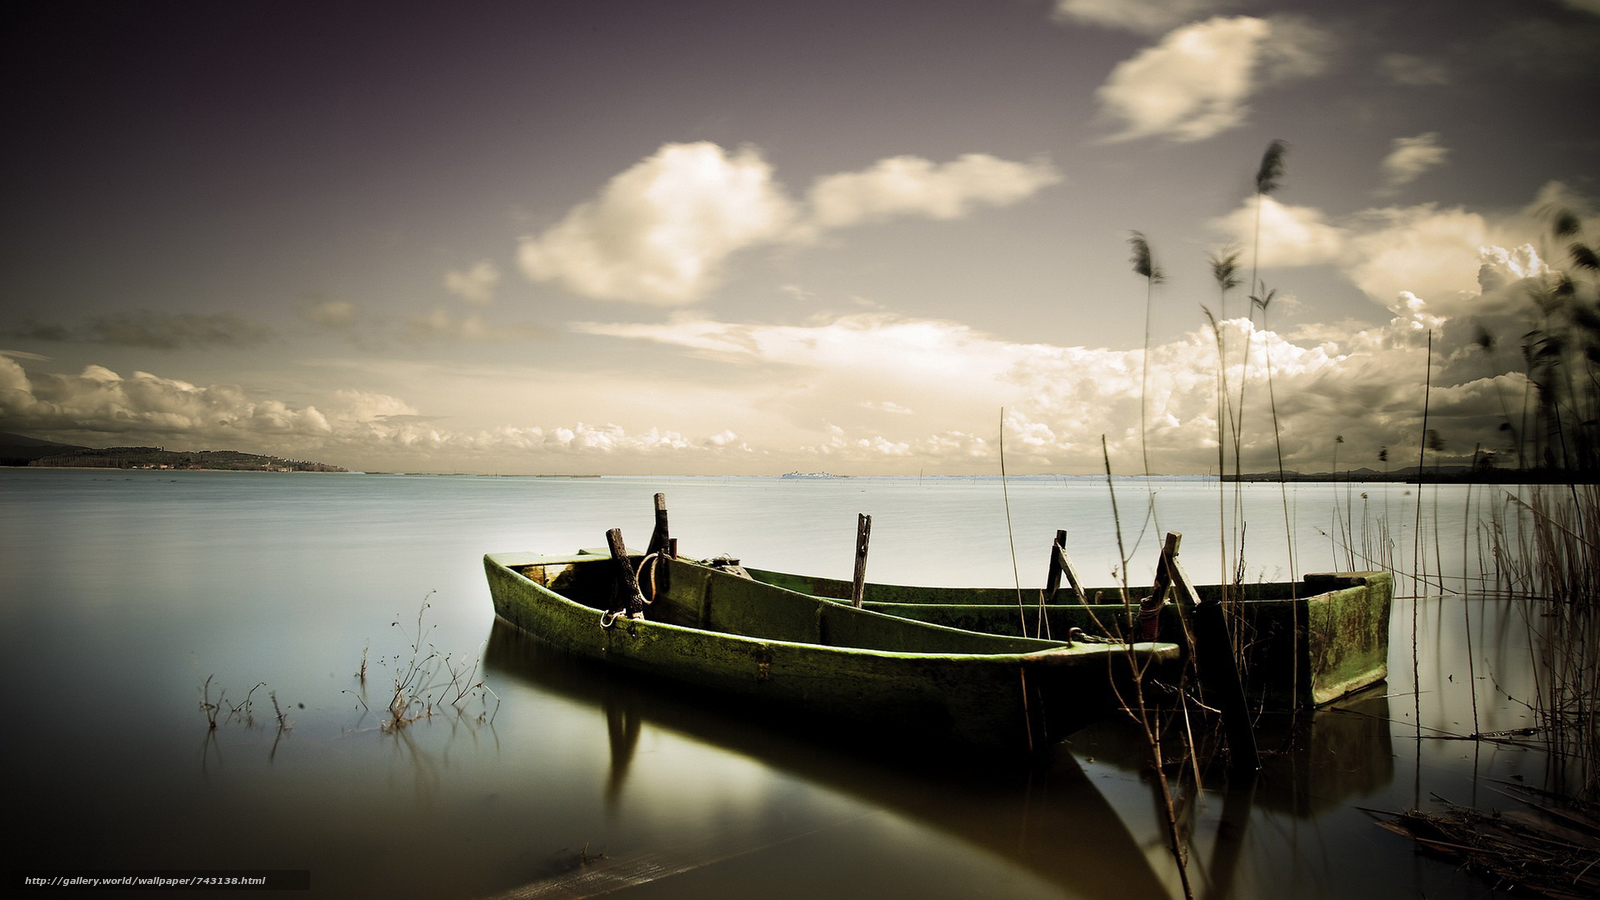 landscape, a boat, boats, water, nature, peace, relaxation, River, lake, sky, clouds